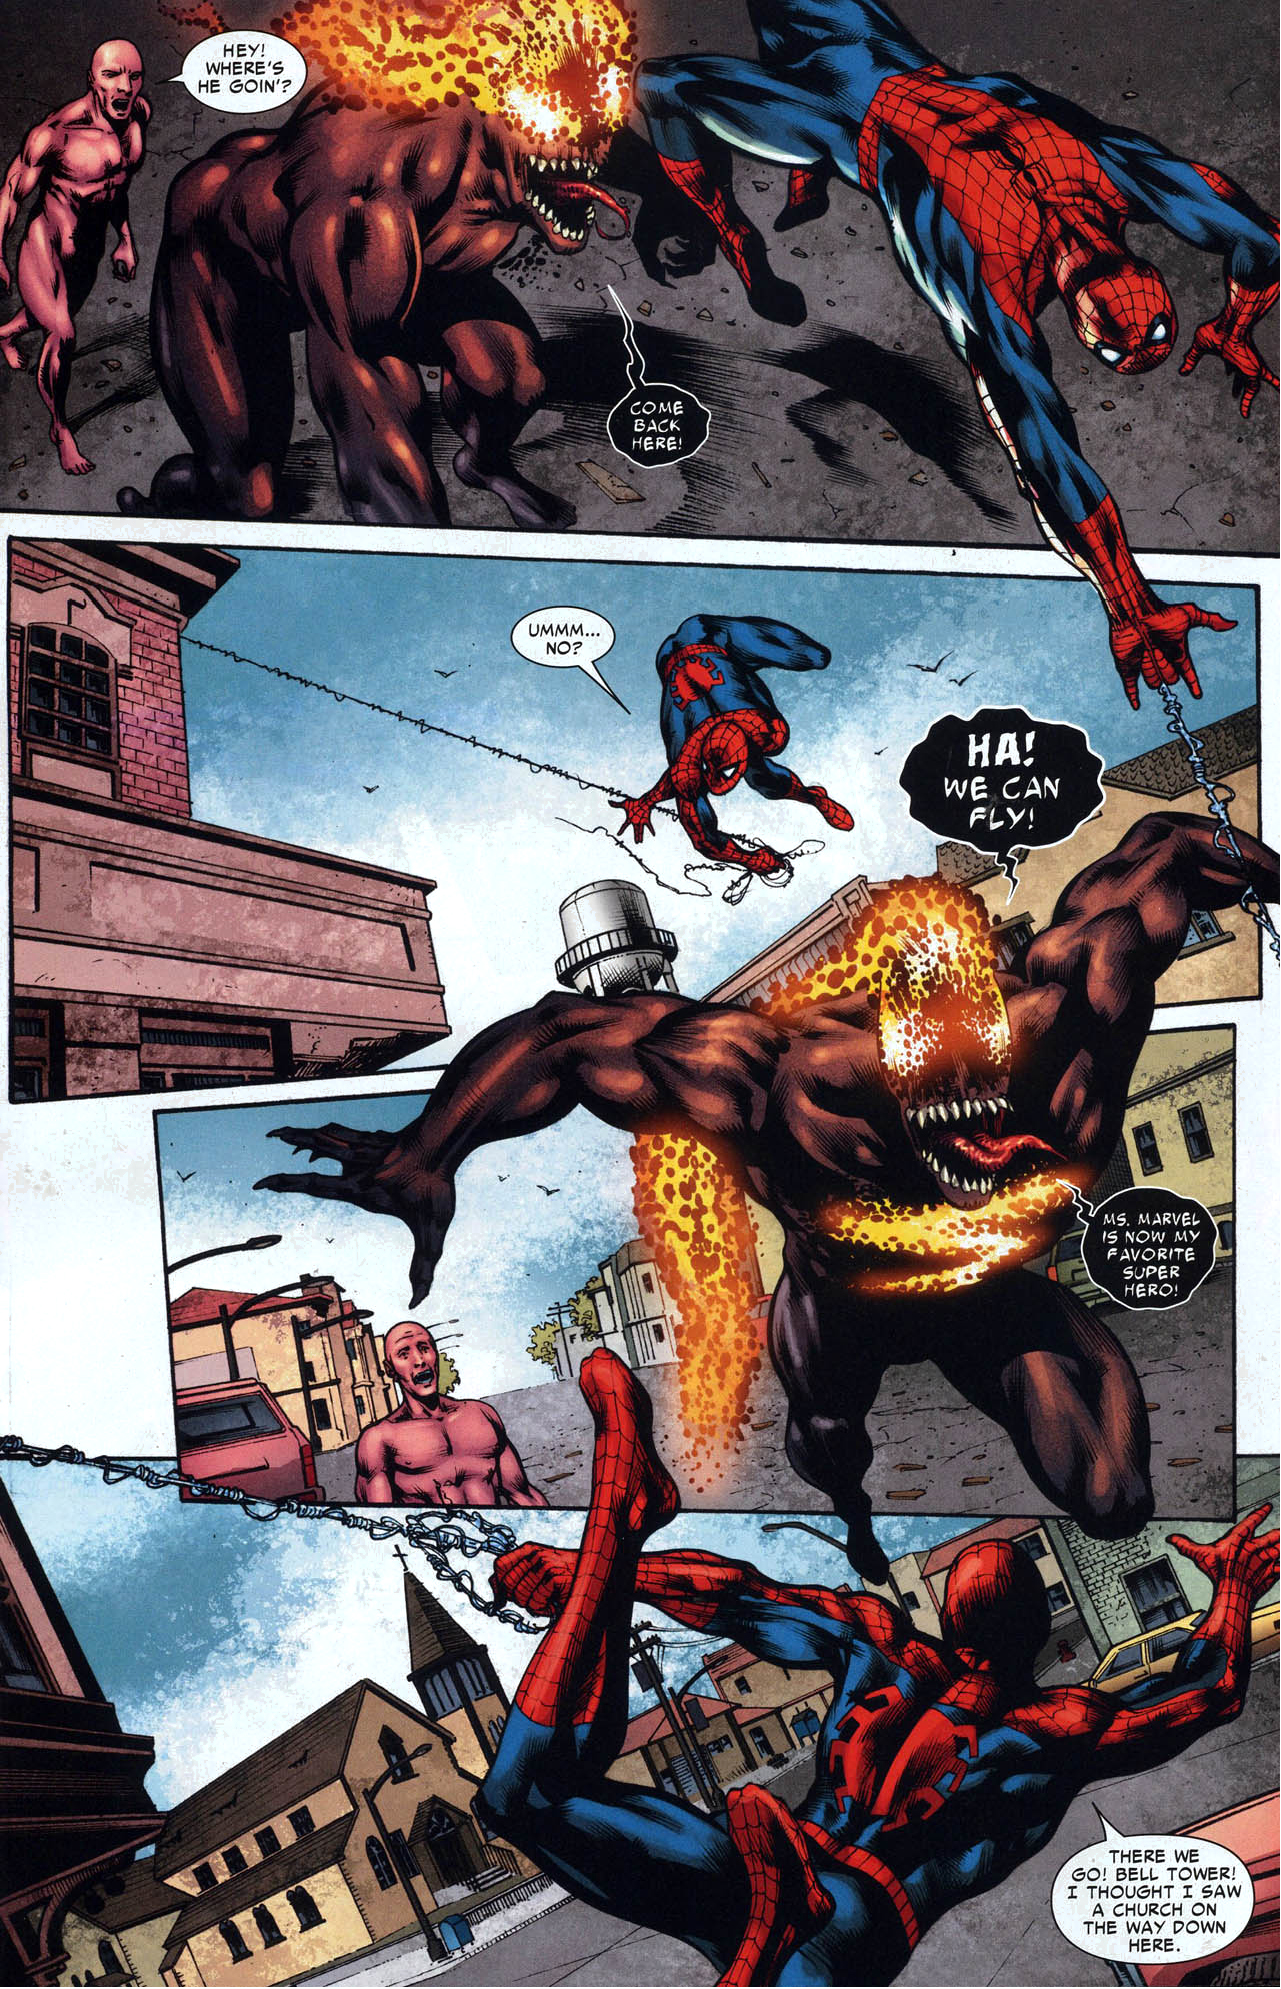 spider-man vs miss marvel with symbiote